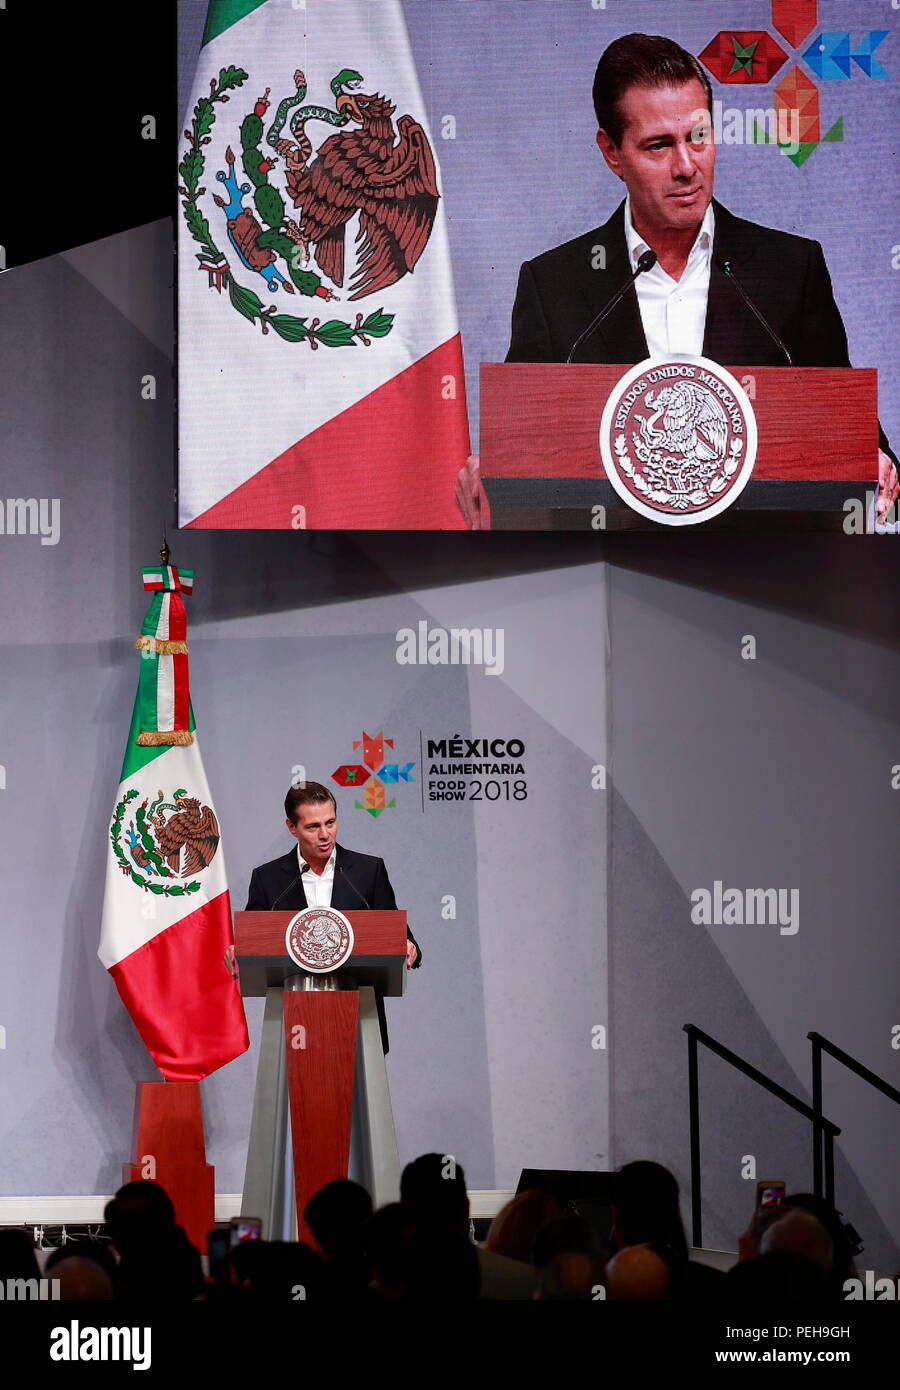 Mexican President Enrique Pena Nieto speaks during the inauguration of the Mexico Alimentaria Food Show 2018, in Mexico City, Mexico, 15 August 2018. Accordingo to Pena Nieto Mexico's agriculture and food products are exported to 170 countries, which he considered a way to consolidate the country as a wolrd power. EFE/Jose Mendez - Stock Image